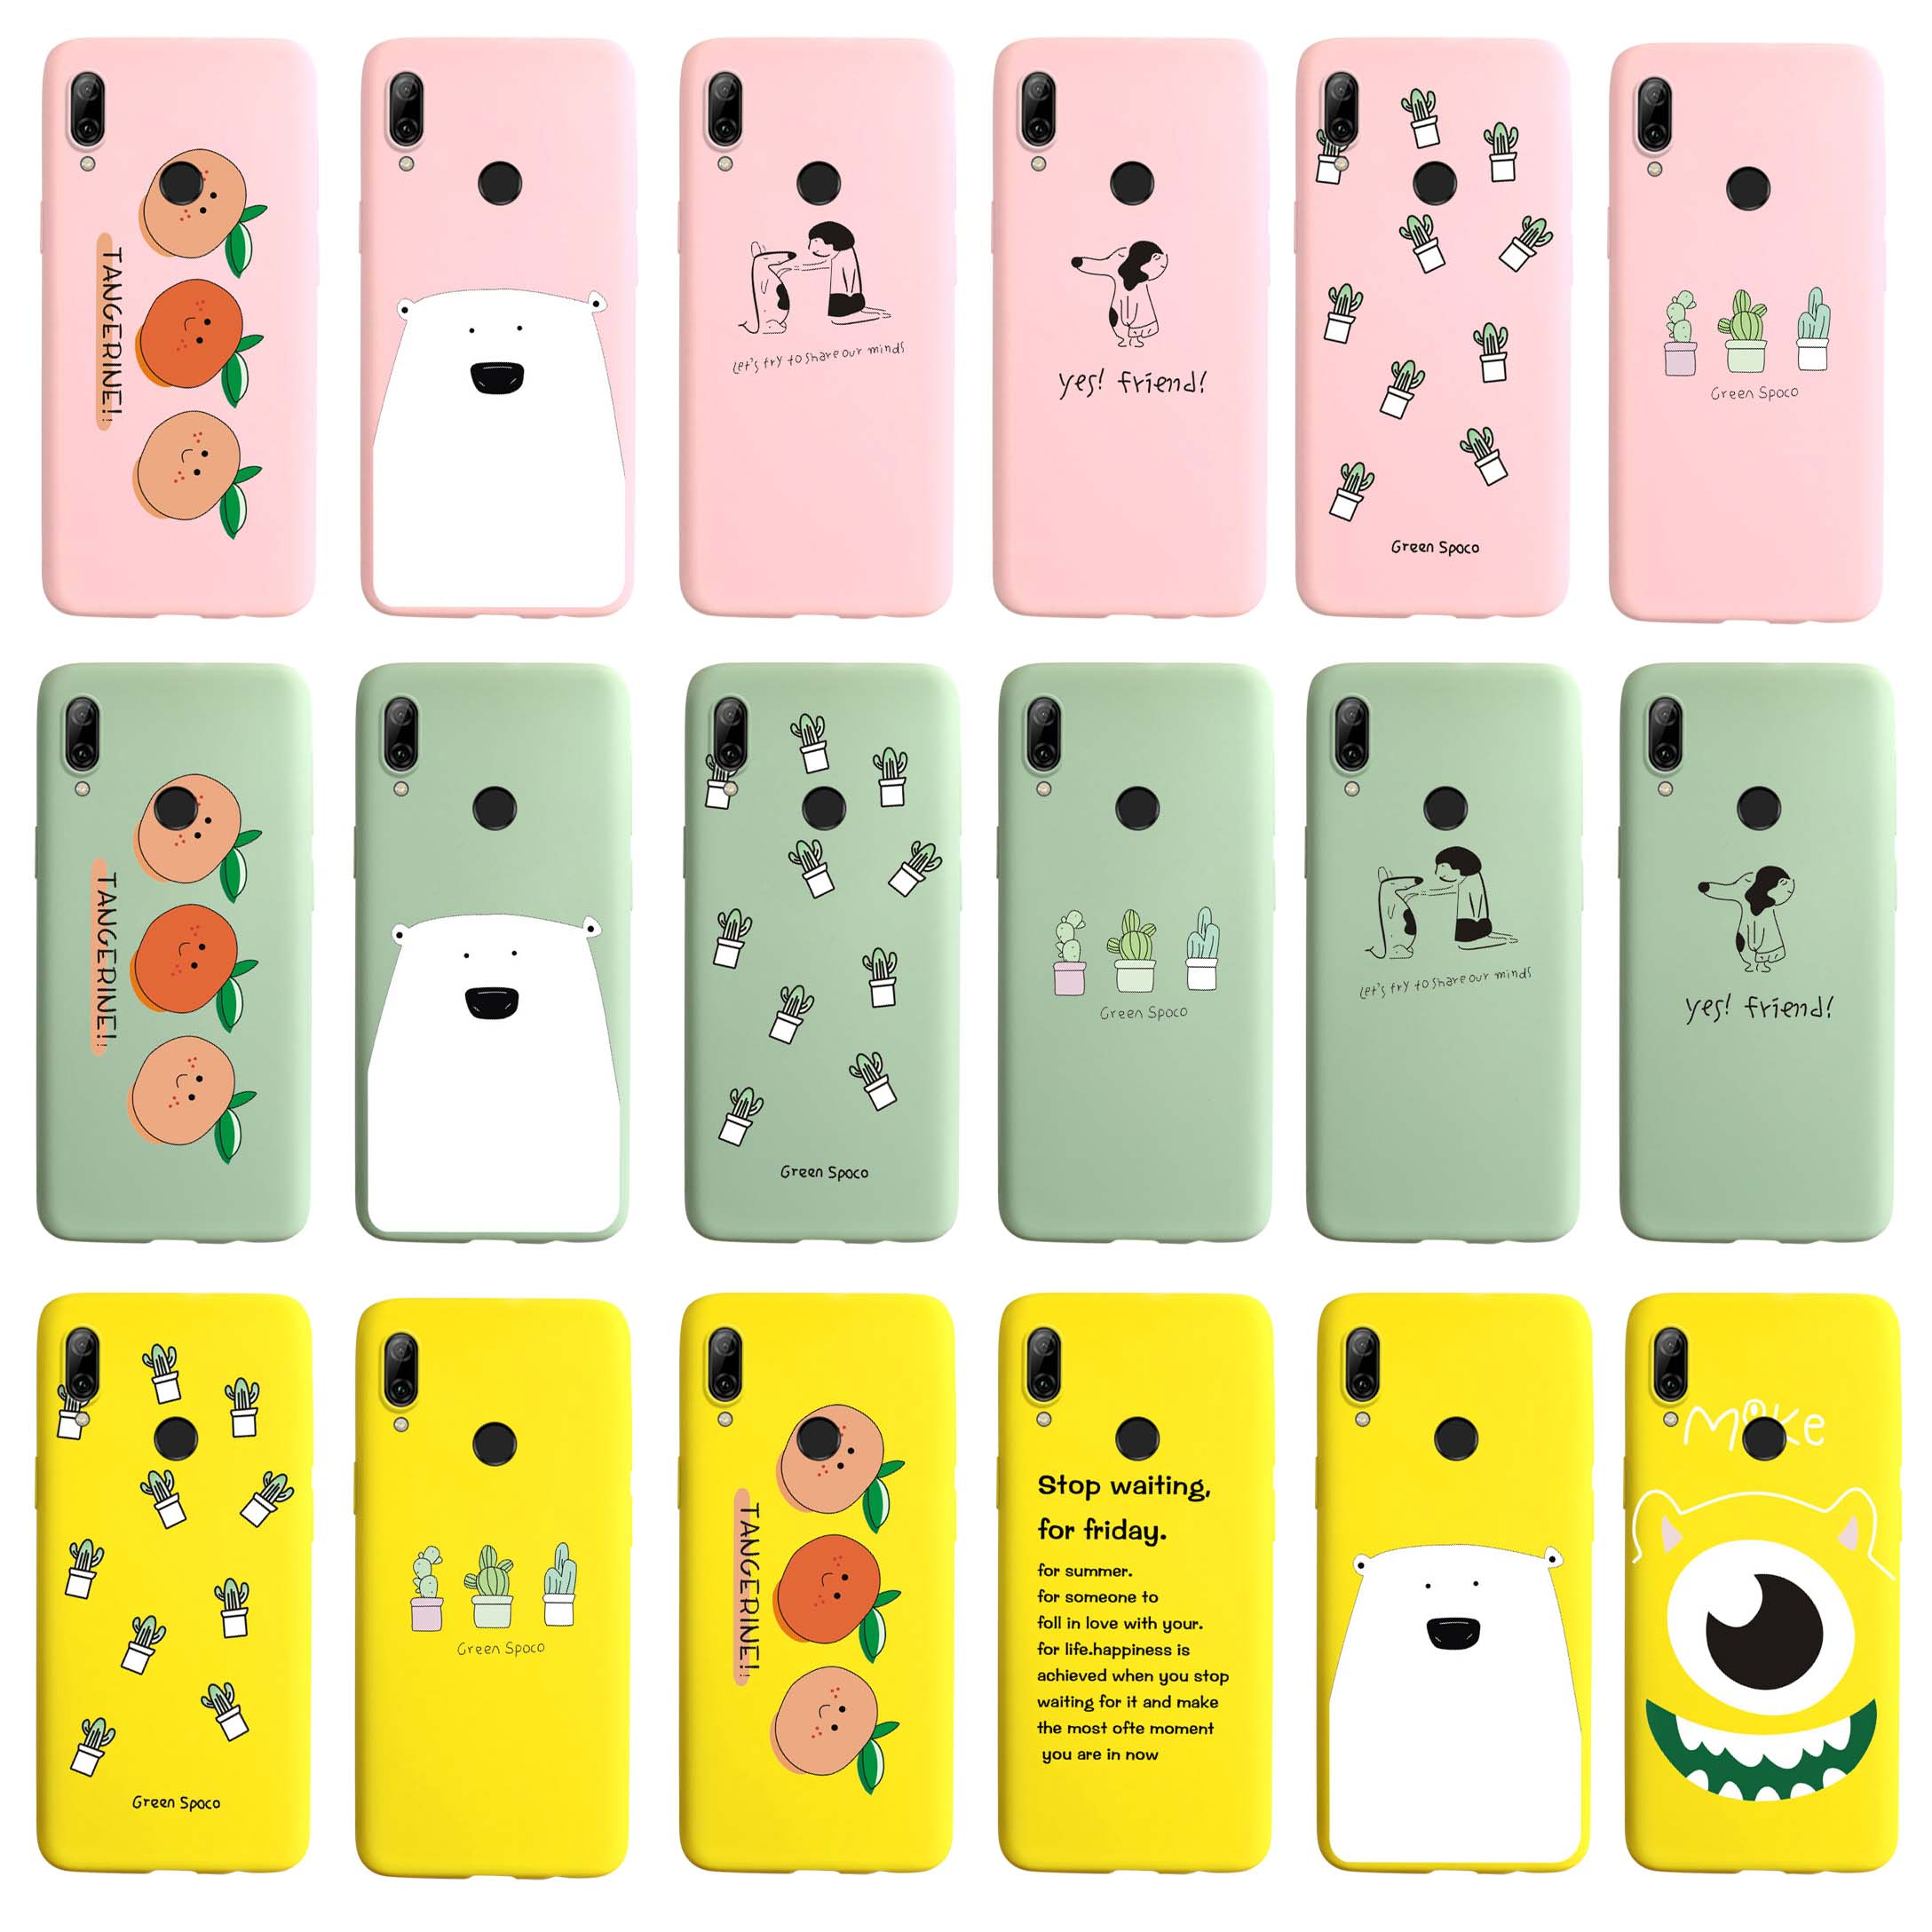 Buy Candy Color Soft Case For Huawei P Smart 2019 Cases Cactus Heart Painted Cover For Huawei PSmart 2019 POT-LX1 POT-LX3 Coque Capa for only 0.88 USD